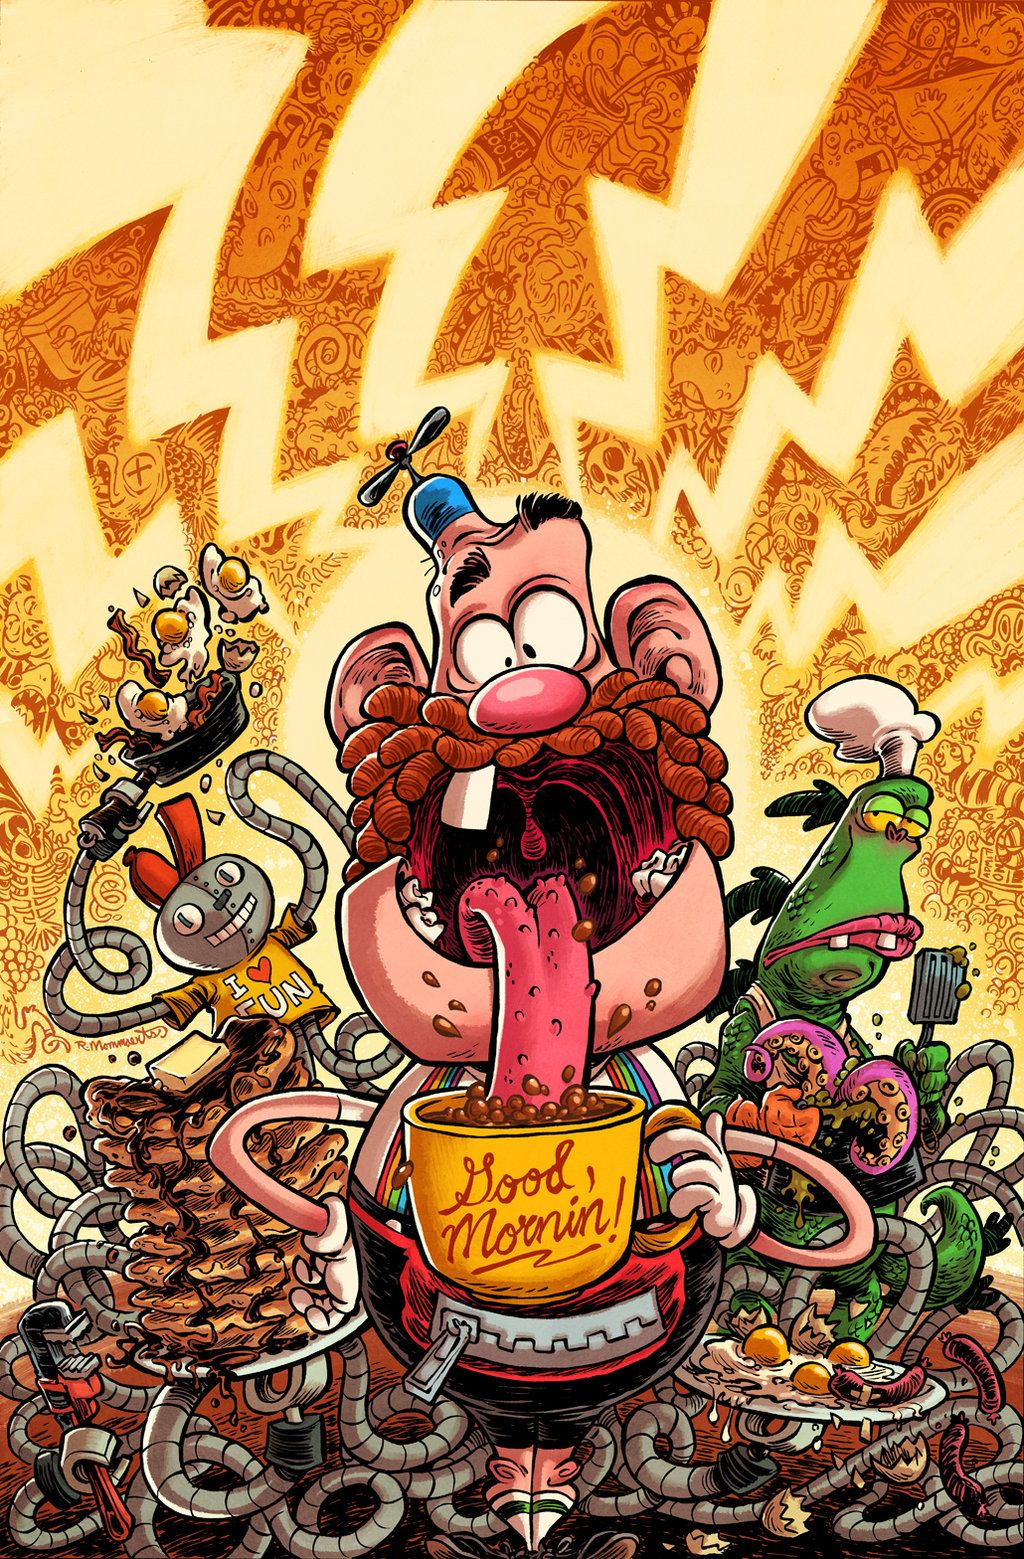 Uncle Grandpa Issue 6 Uncle Grandpa Cartoon Wallpaper Cartoon Art